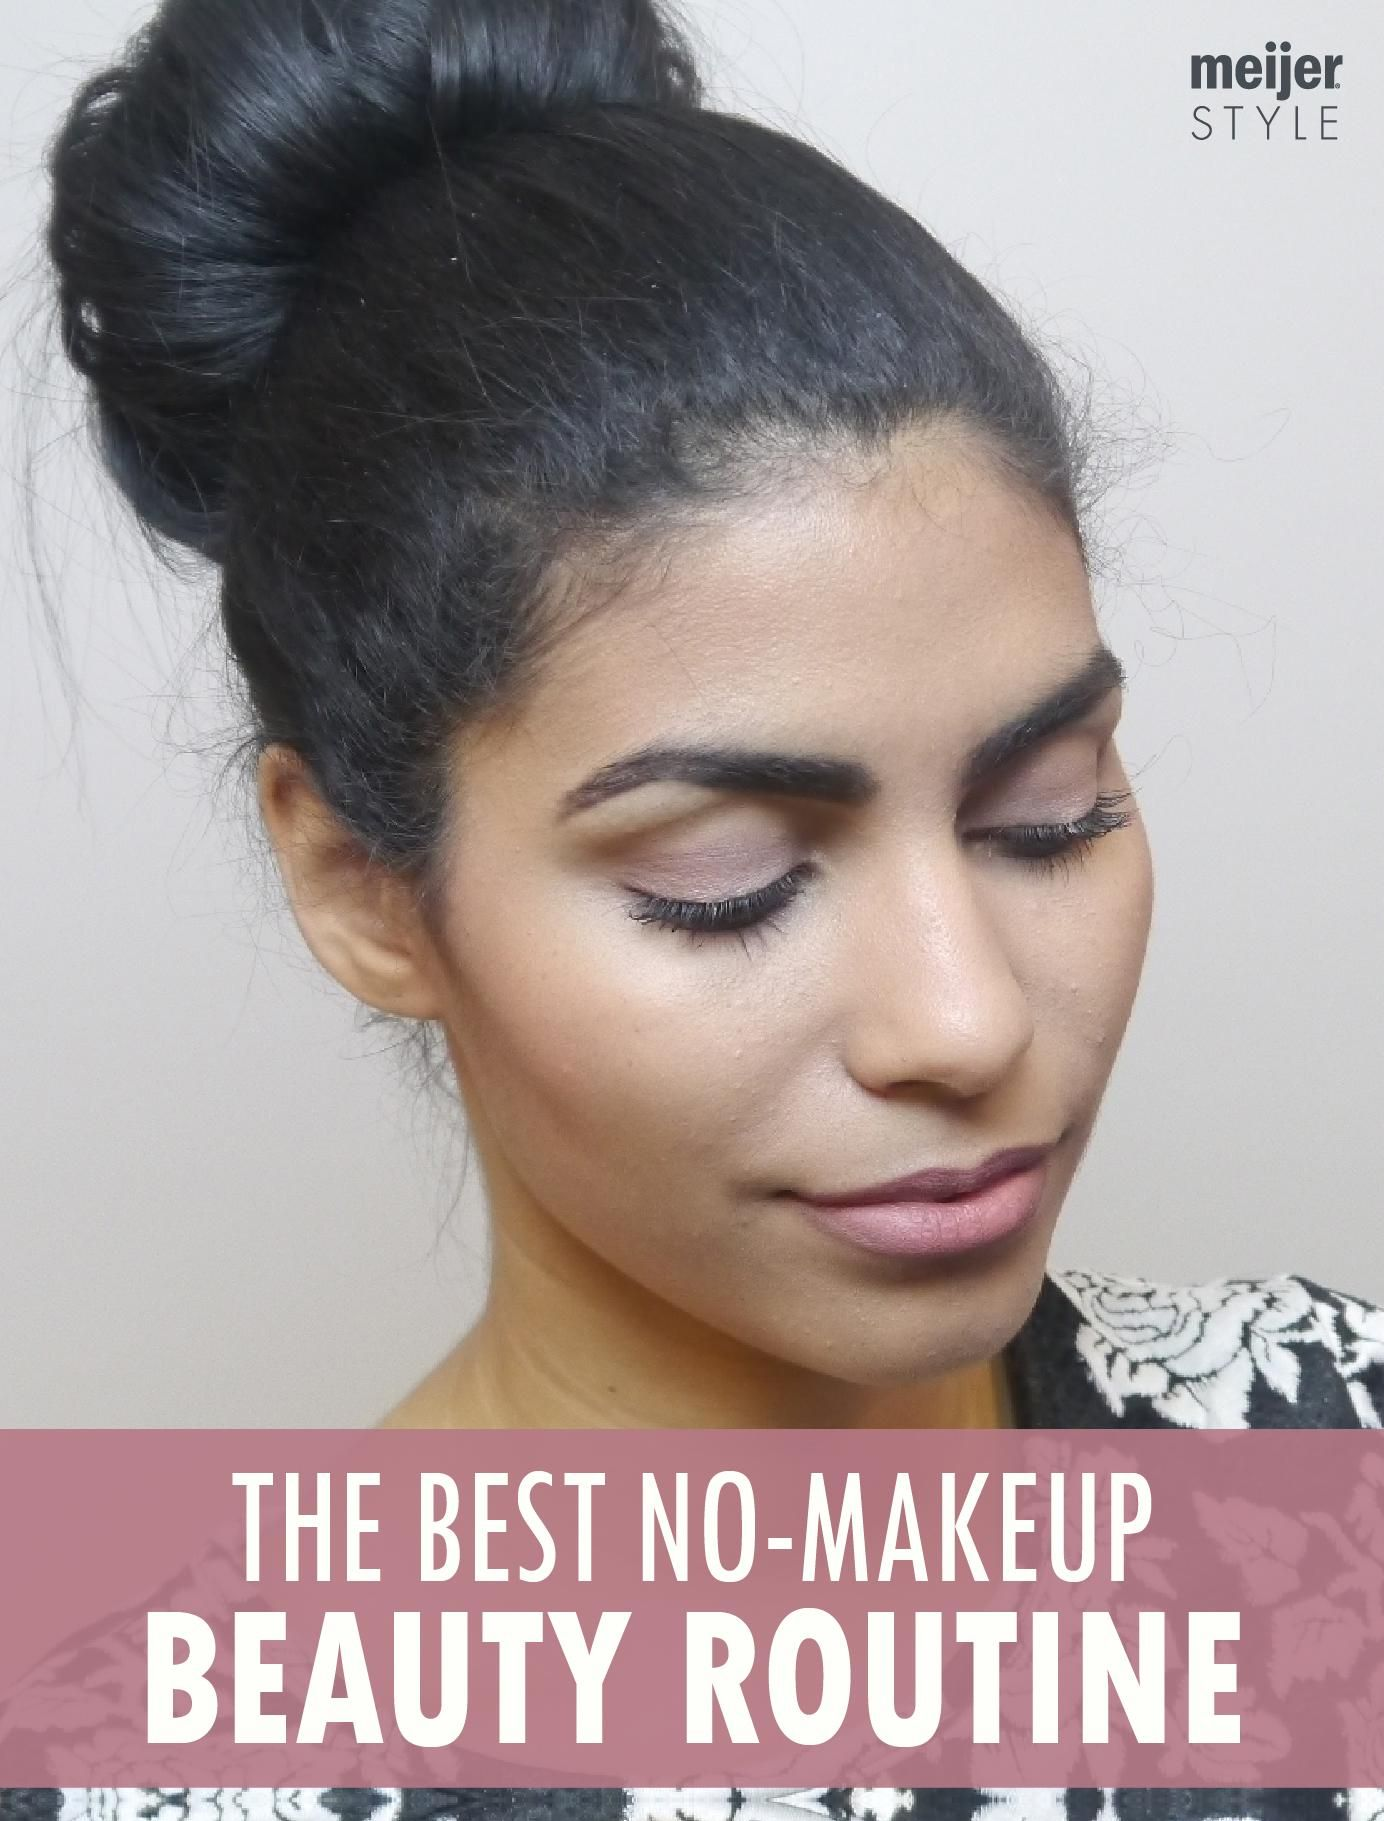 The Best NoMakeup Makeup Routine (With images) Makeup